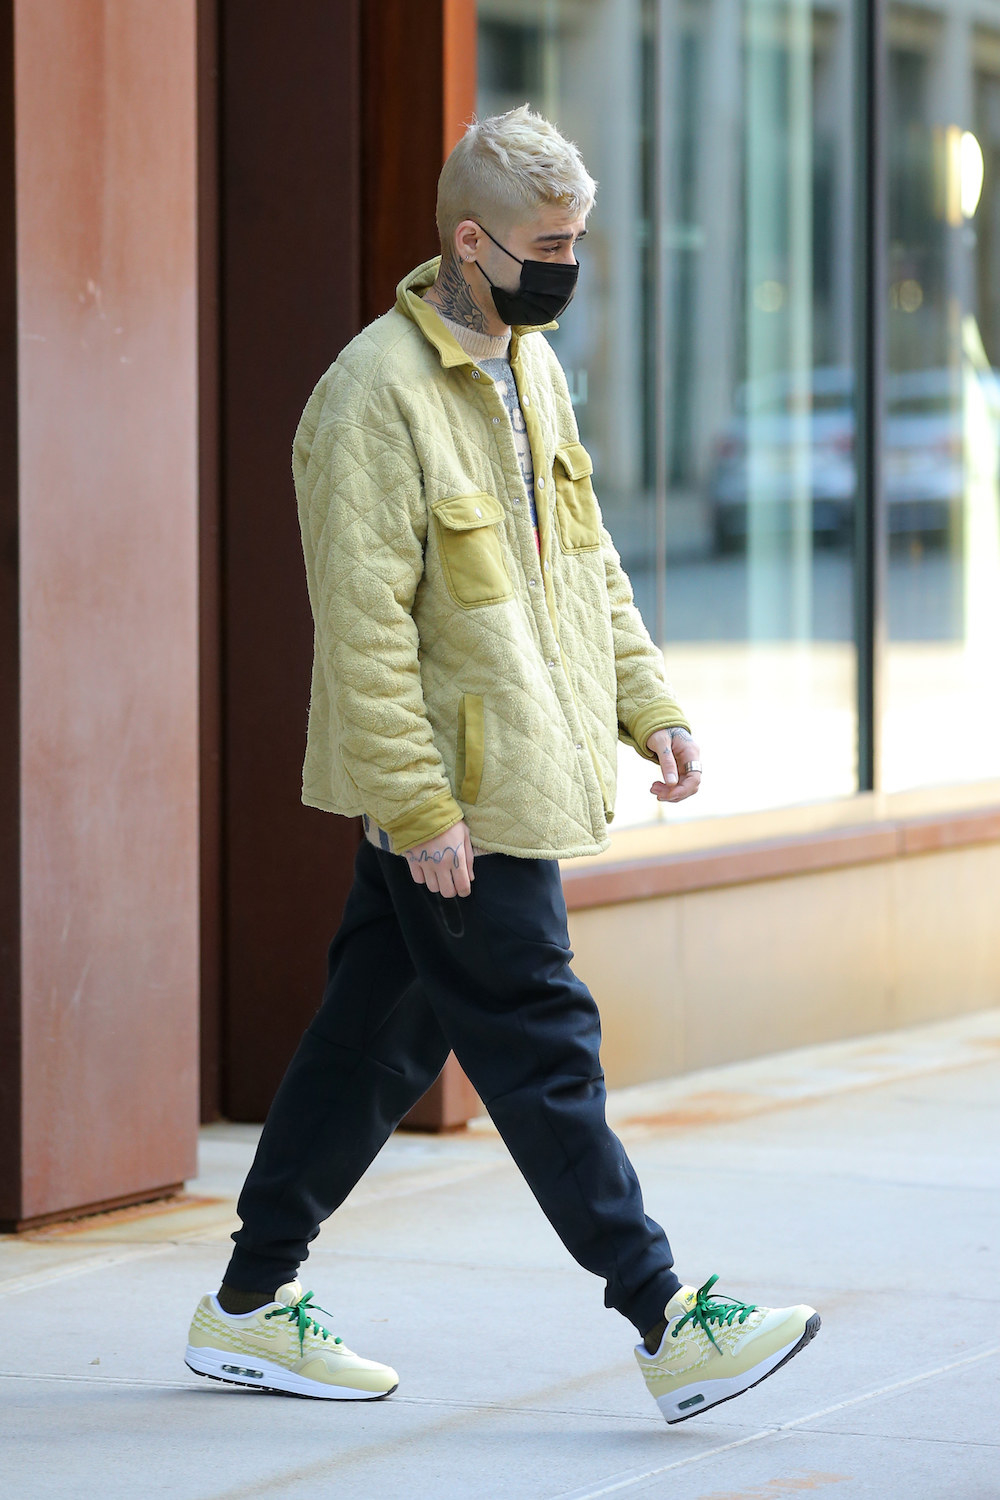 Singer Zayn Malik is seen for the first time in public since the birth of his daughter in New York City.